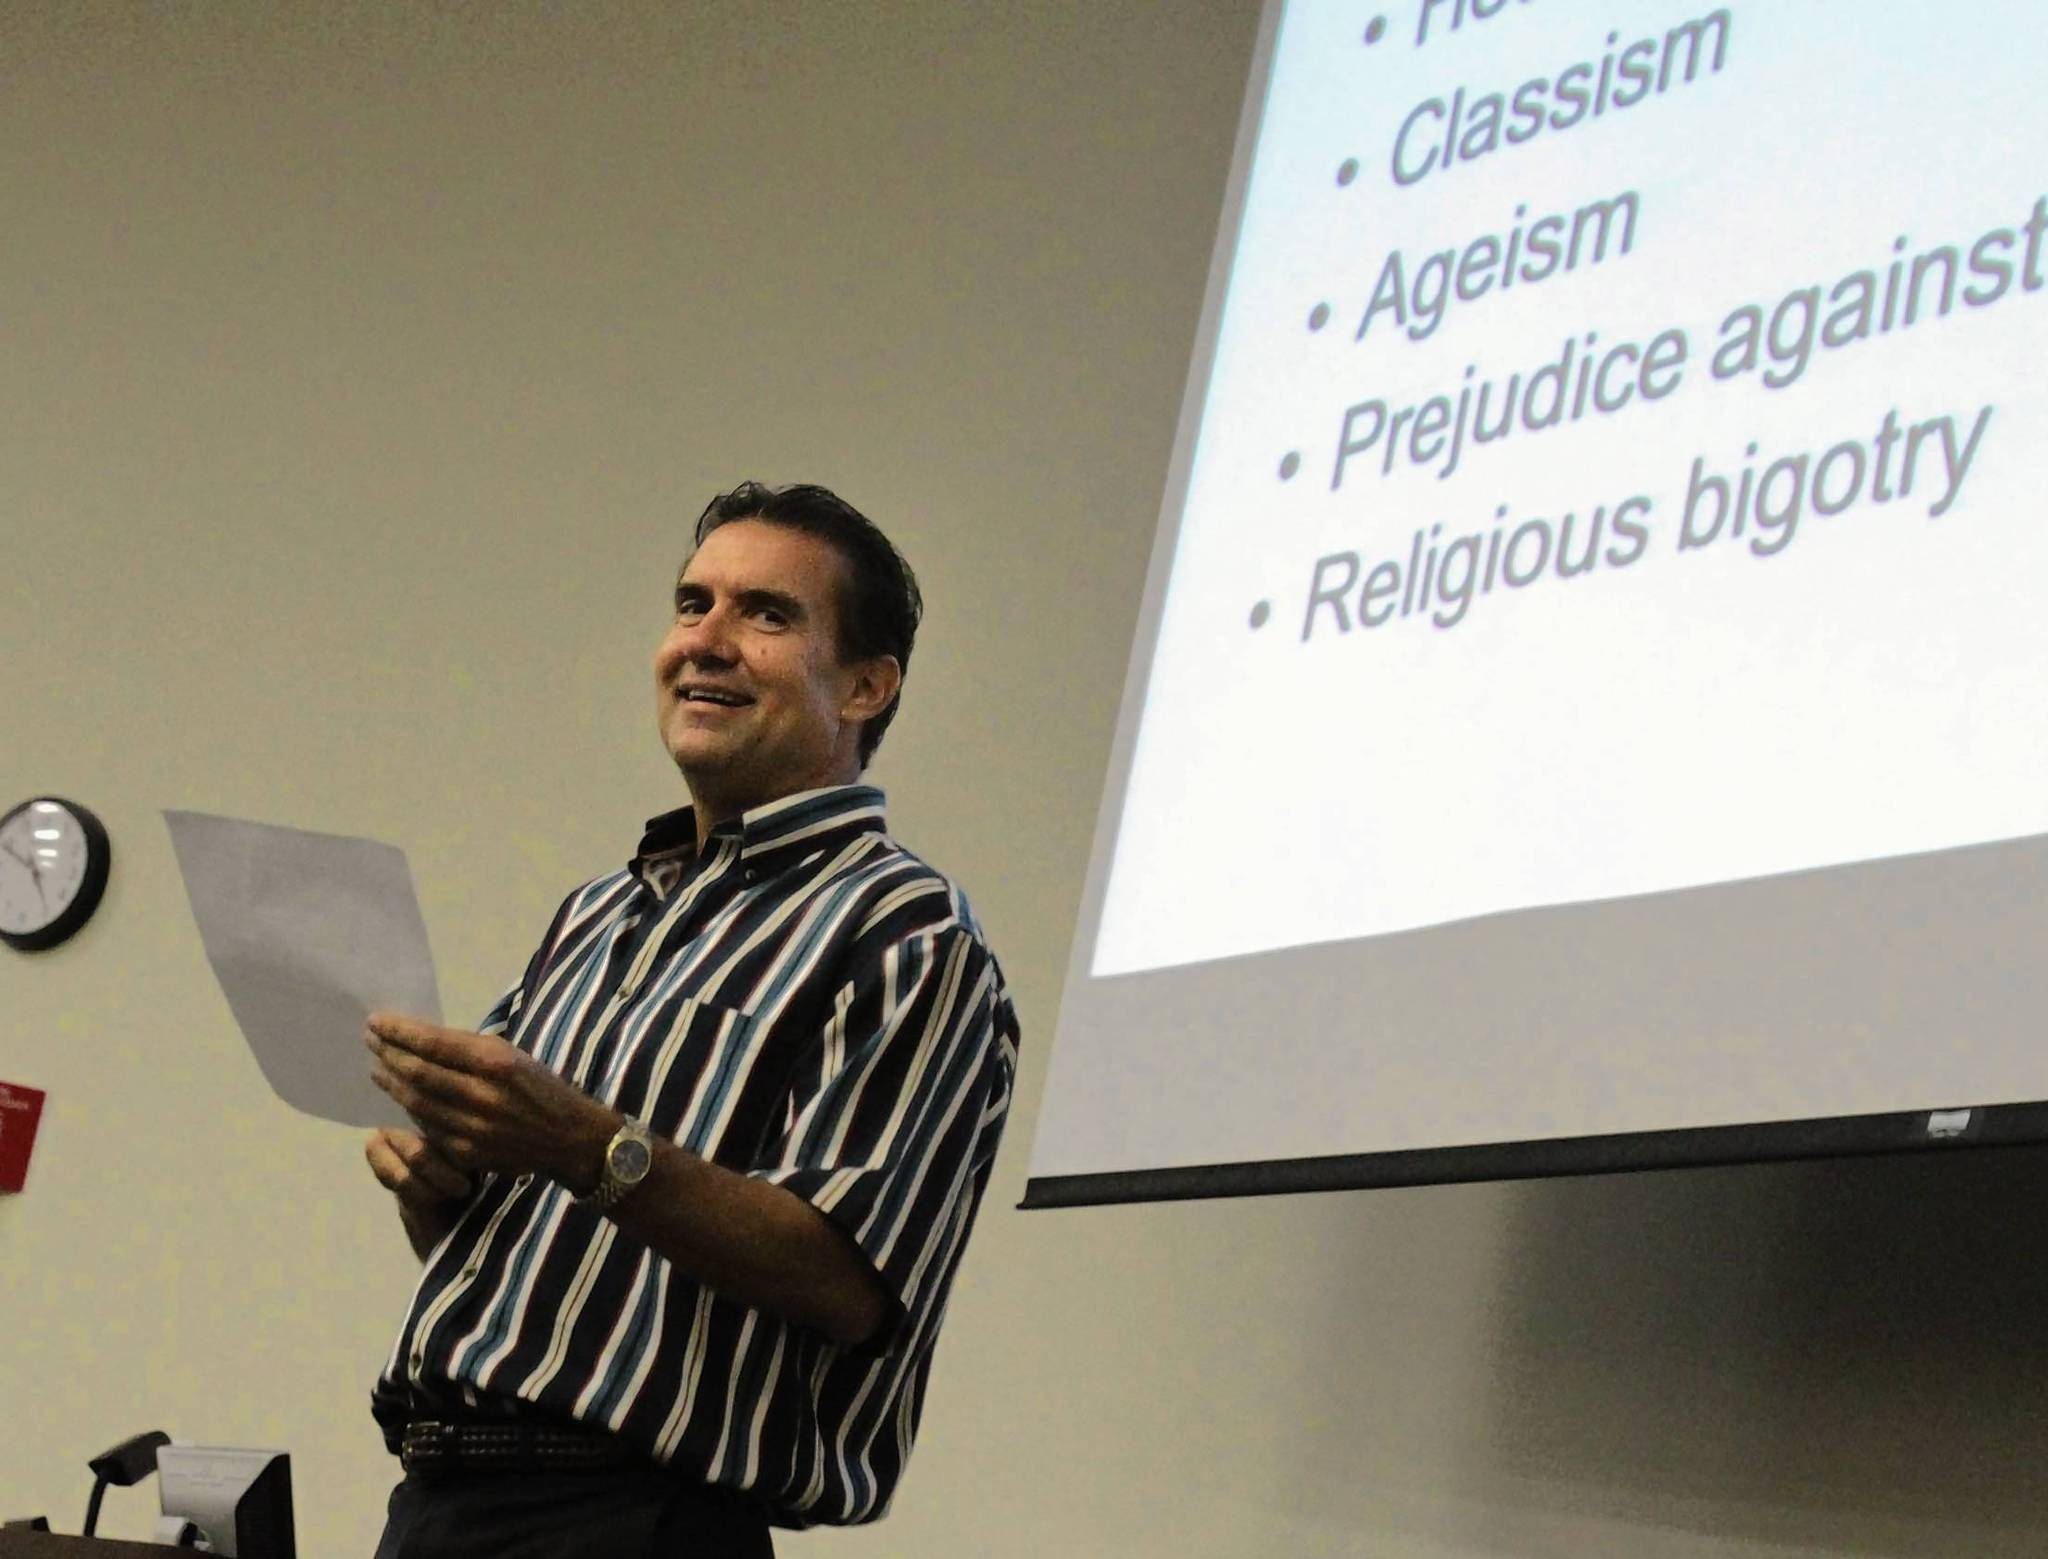 UCF psychology professor Charles Negy reads from a letter complaining about his teaching. He sees the religious polarization in American society reflected in his cross-cultural pyschology class.